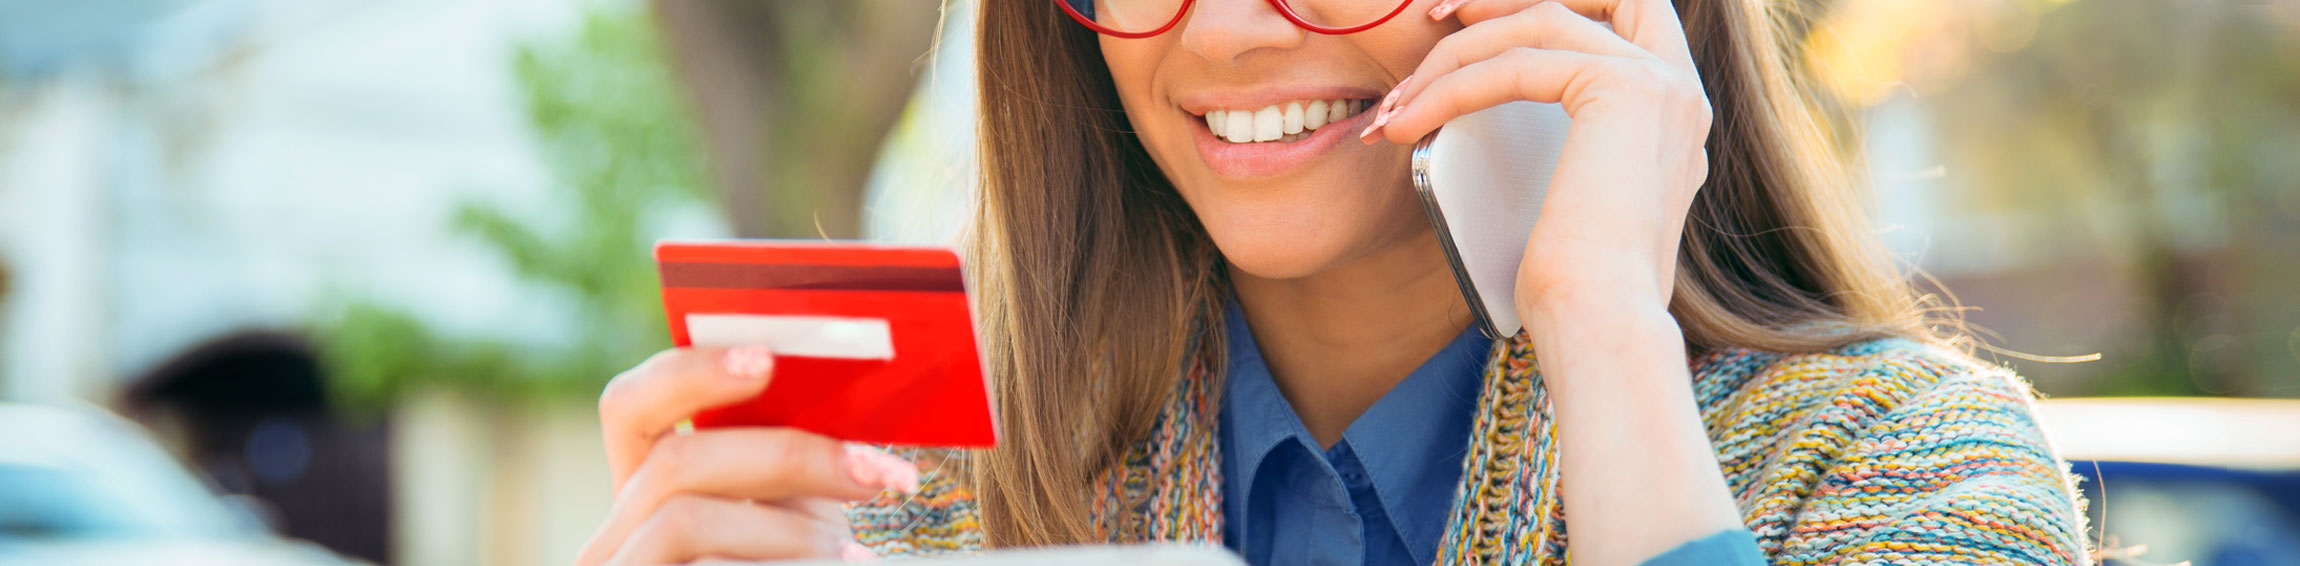 Shoppers want 5 things from mobile ecommerce sites